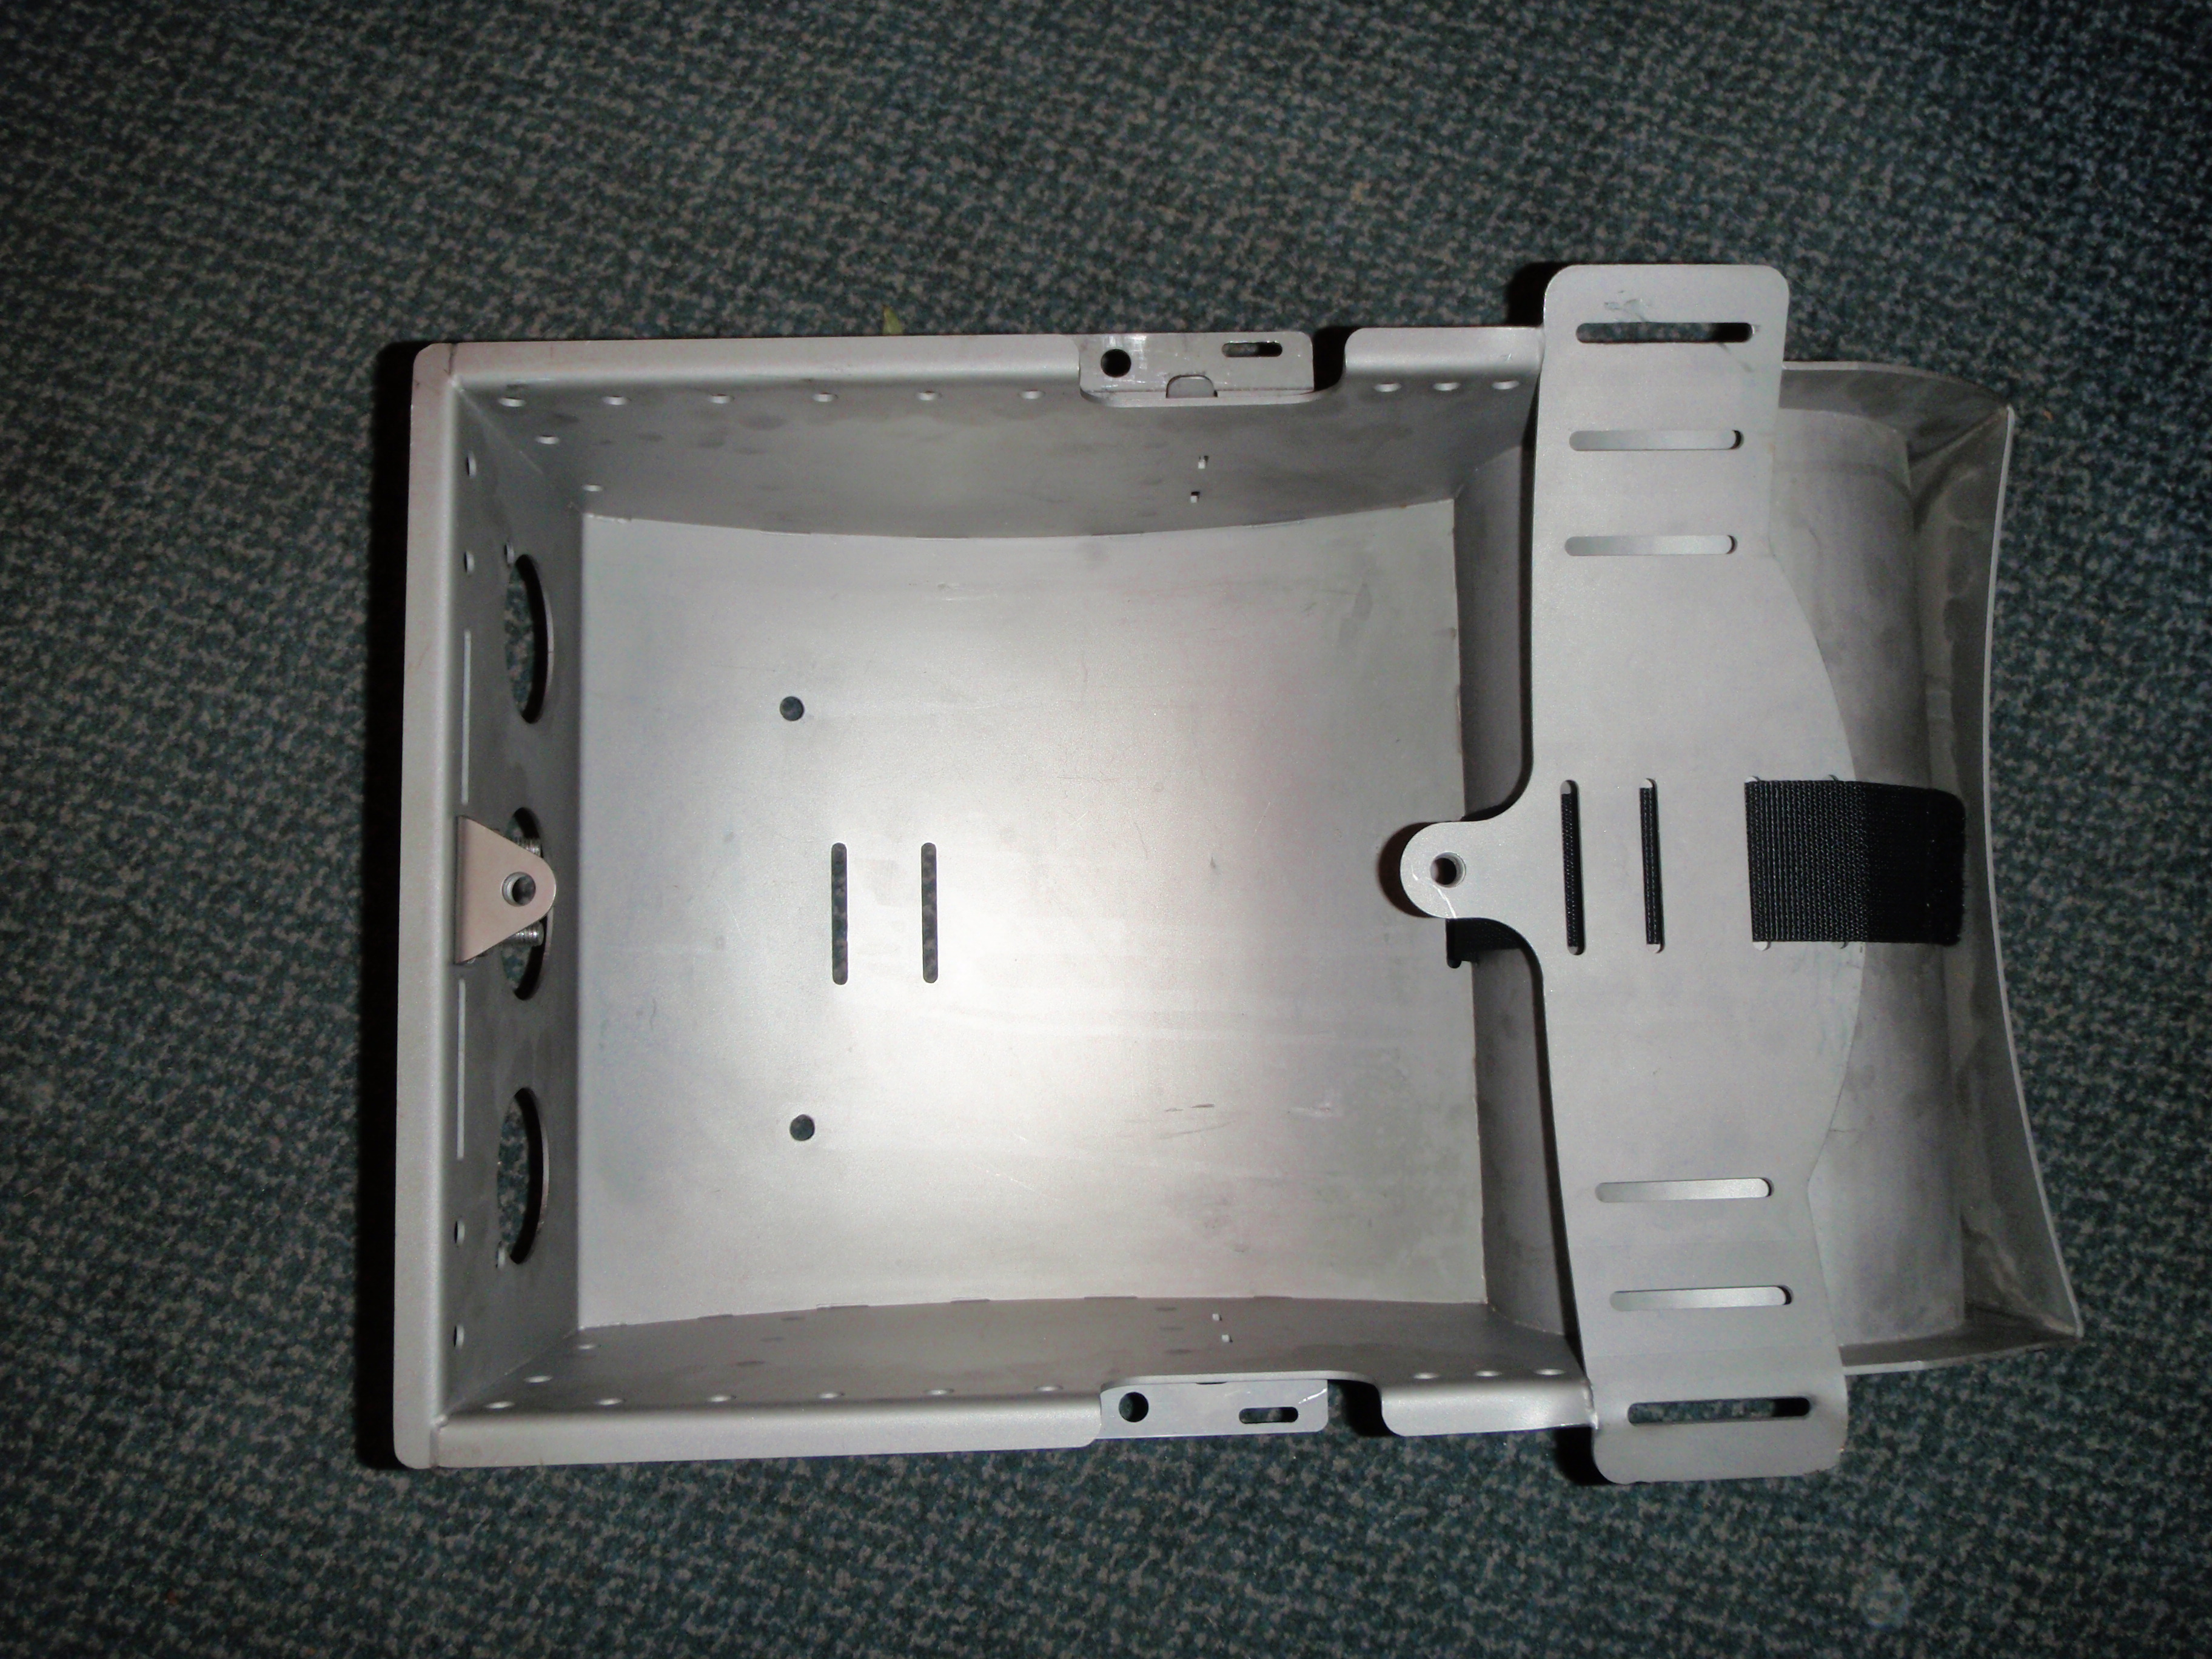 File:Hydrogom aftermarket casing for Draeger Dolphin